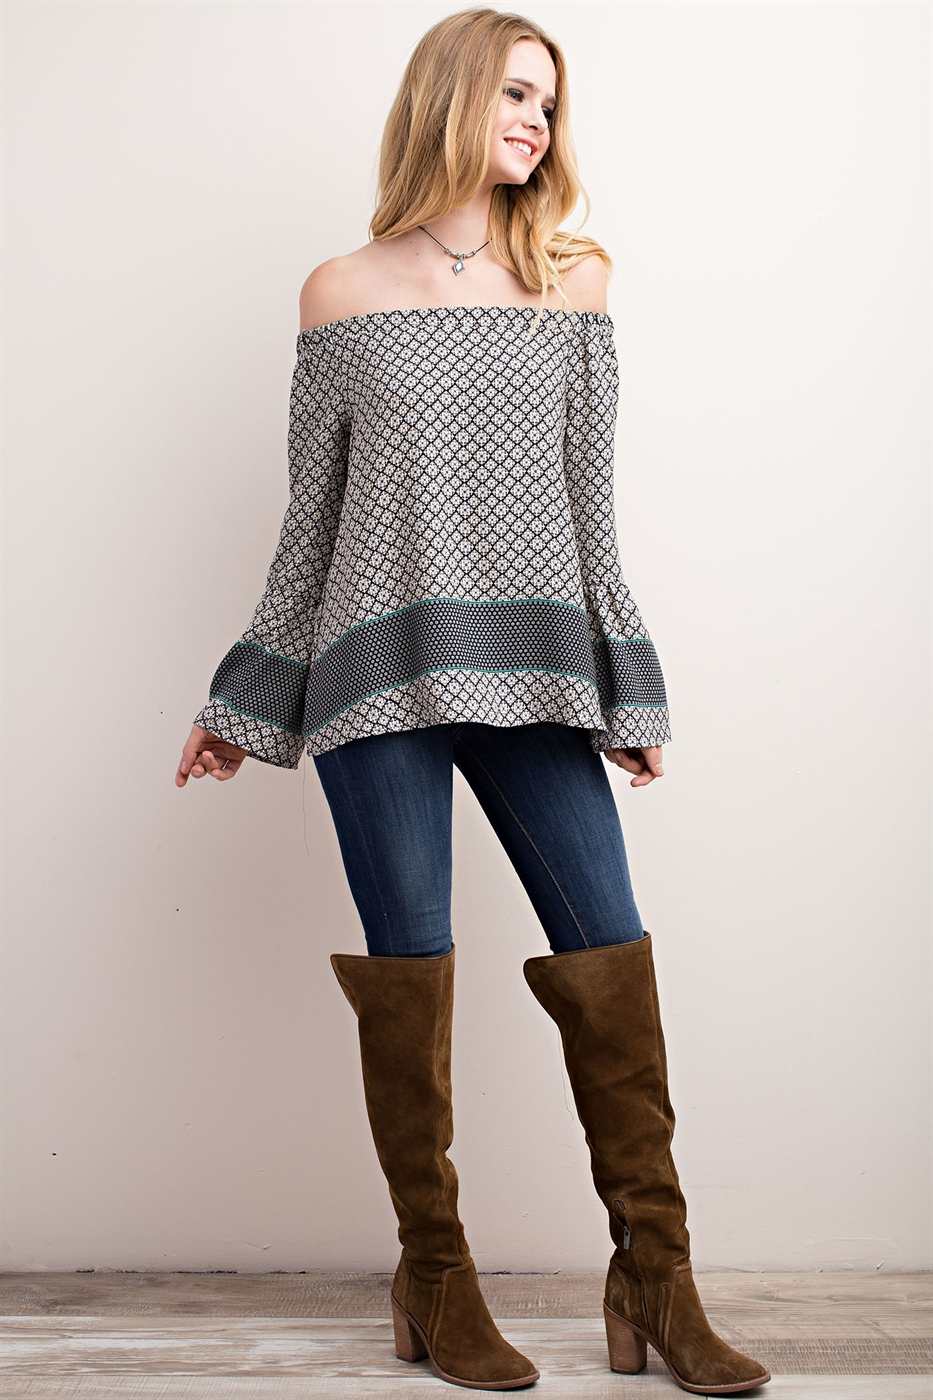 BORDER PRINT OFF-THE-SHOULDER  - orangeshine.com